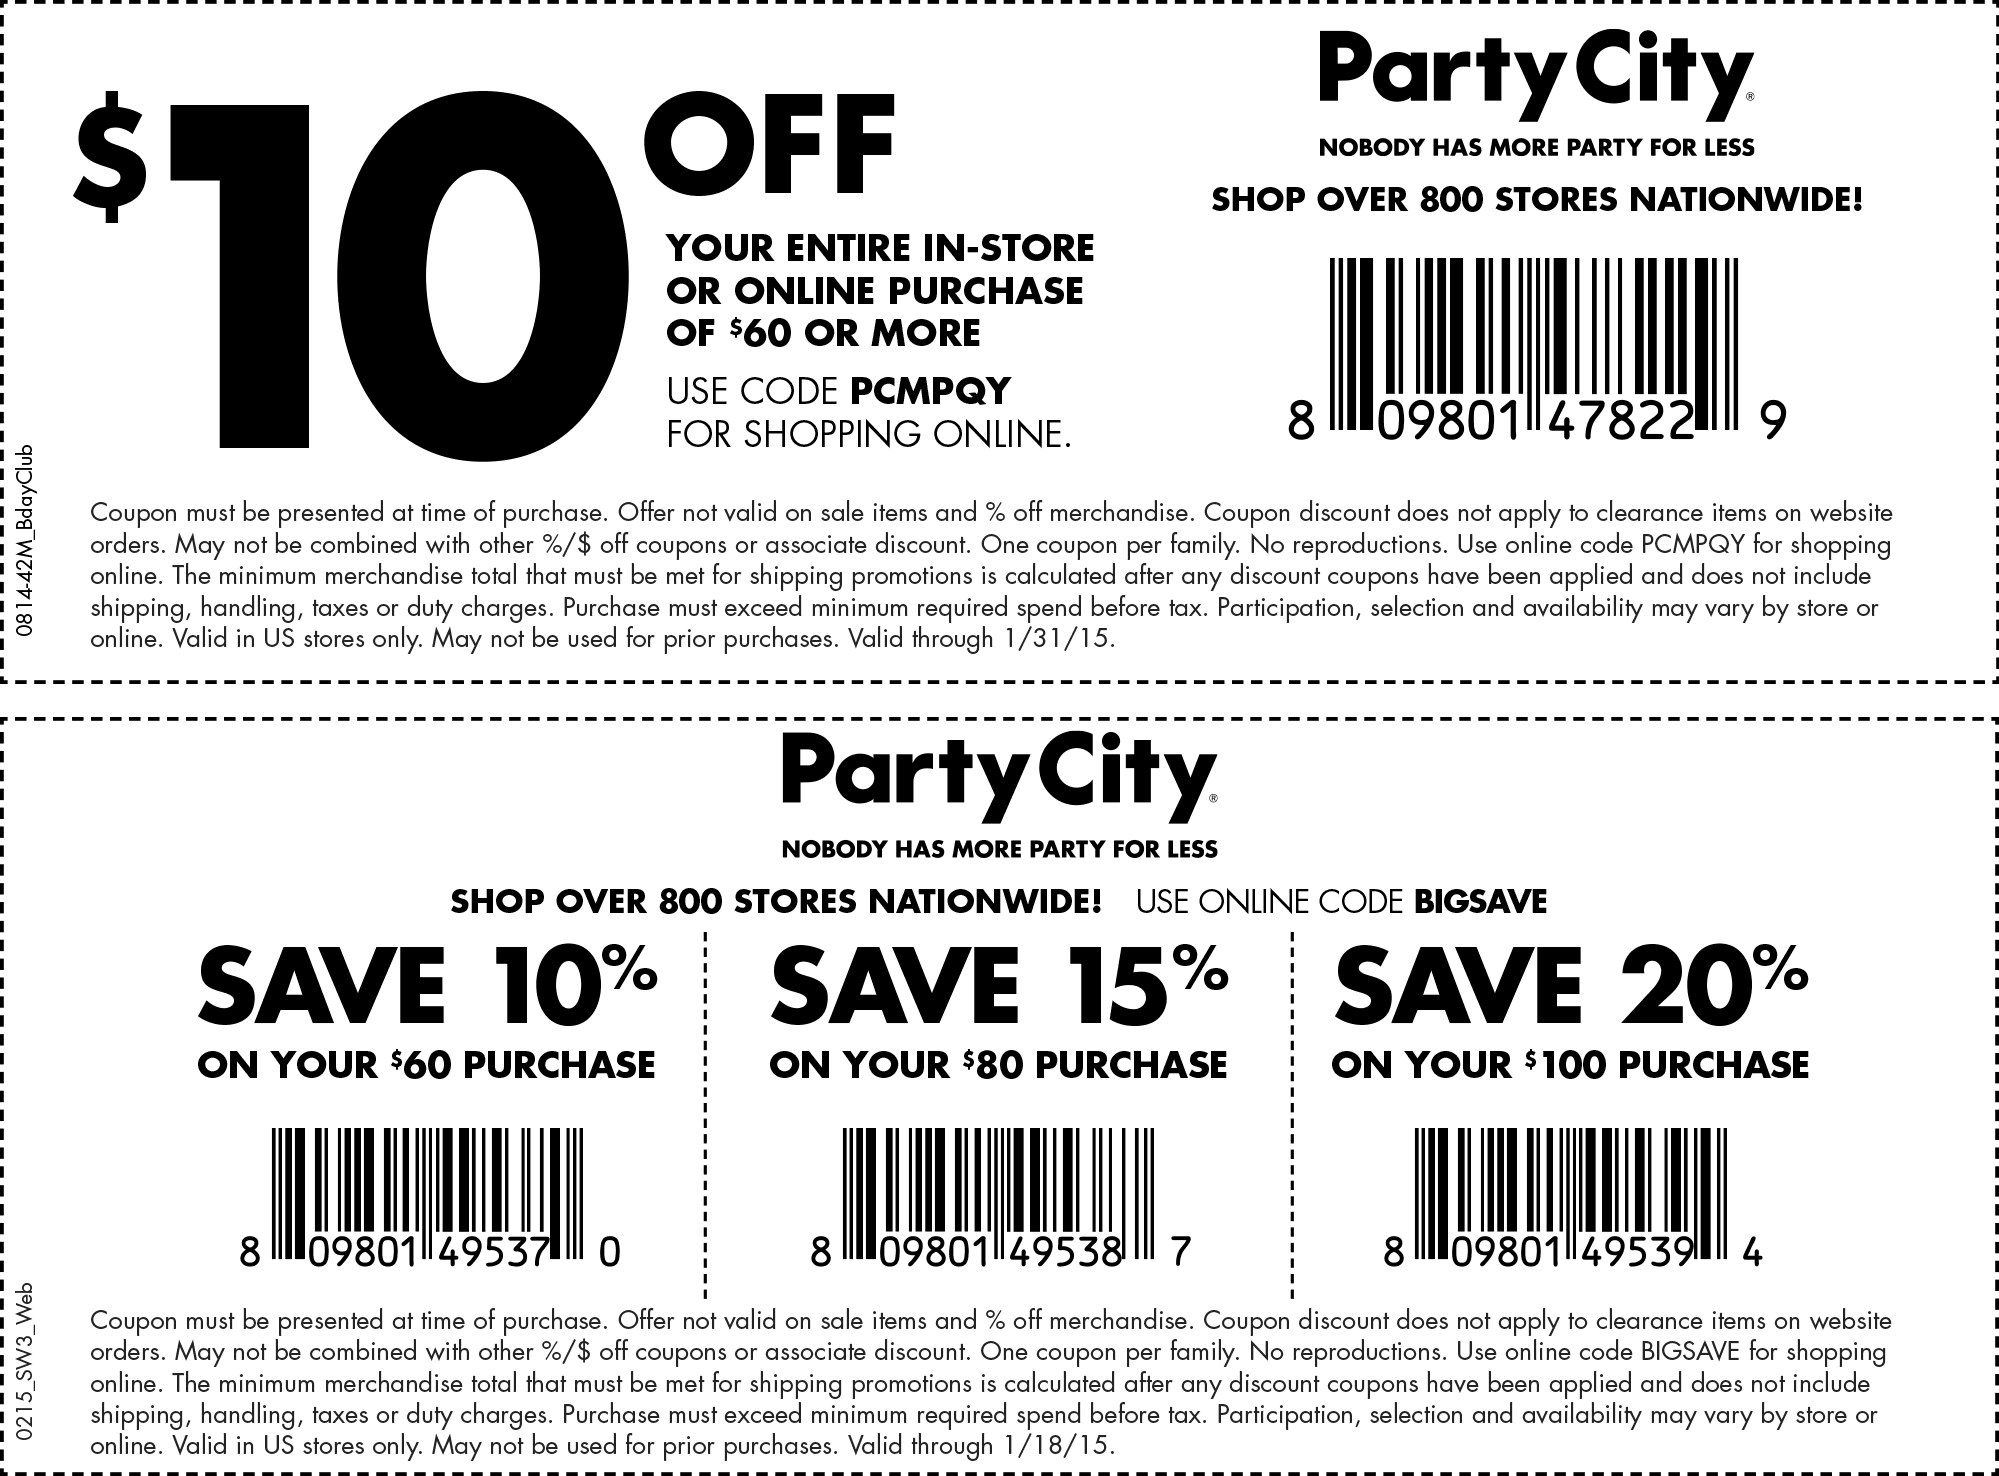 Pinned January 23rd 10 Off 60 At Party City Or Online Via Promo Code Pcmpqy Coupon Via The Coupons App Party City Coupons Free Printable Coupons